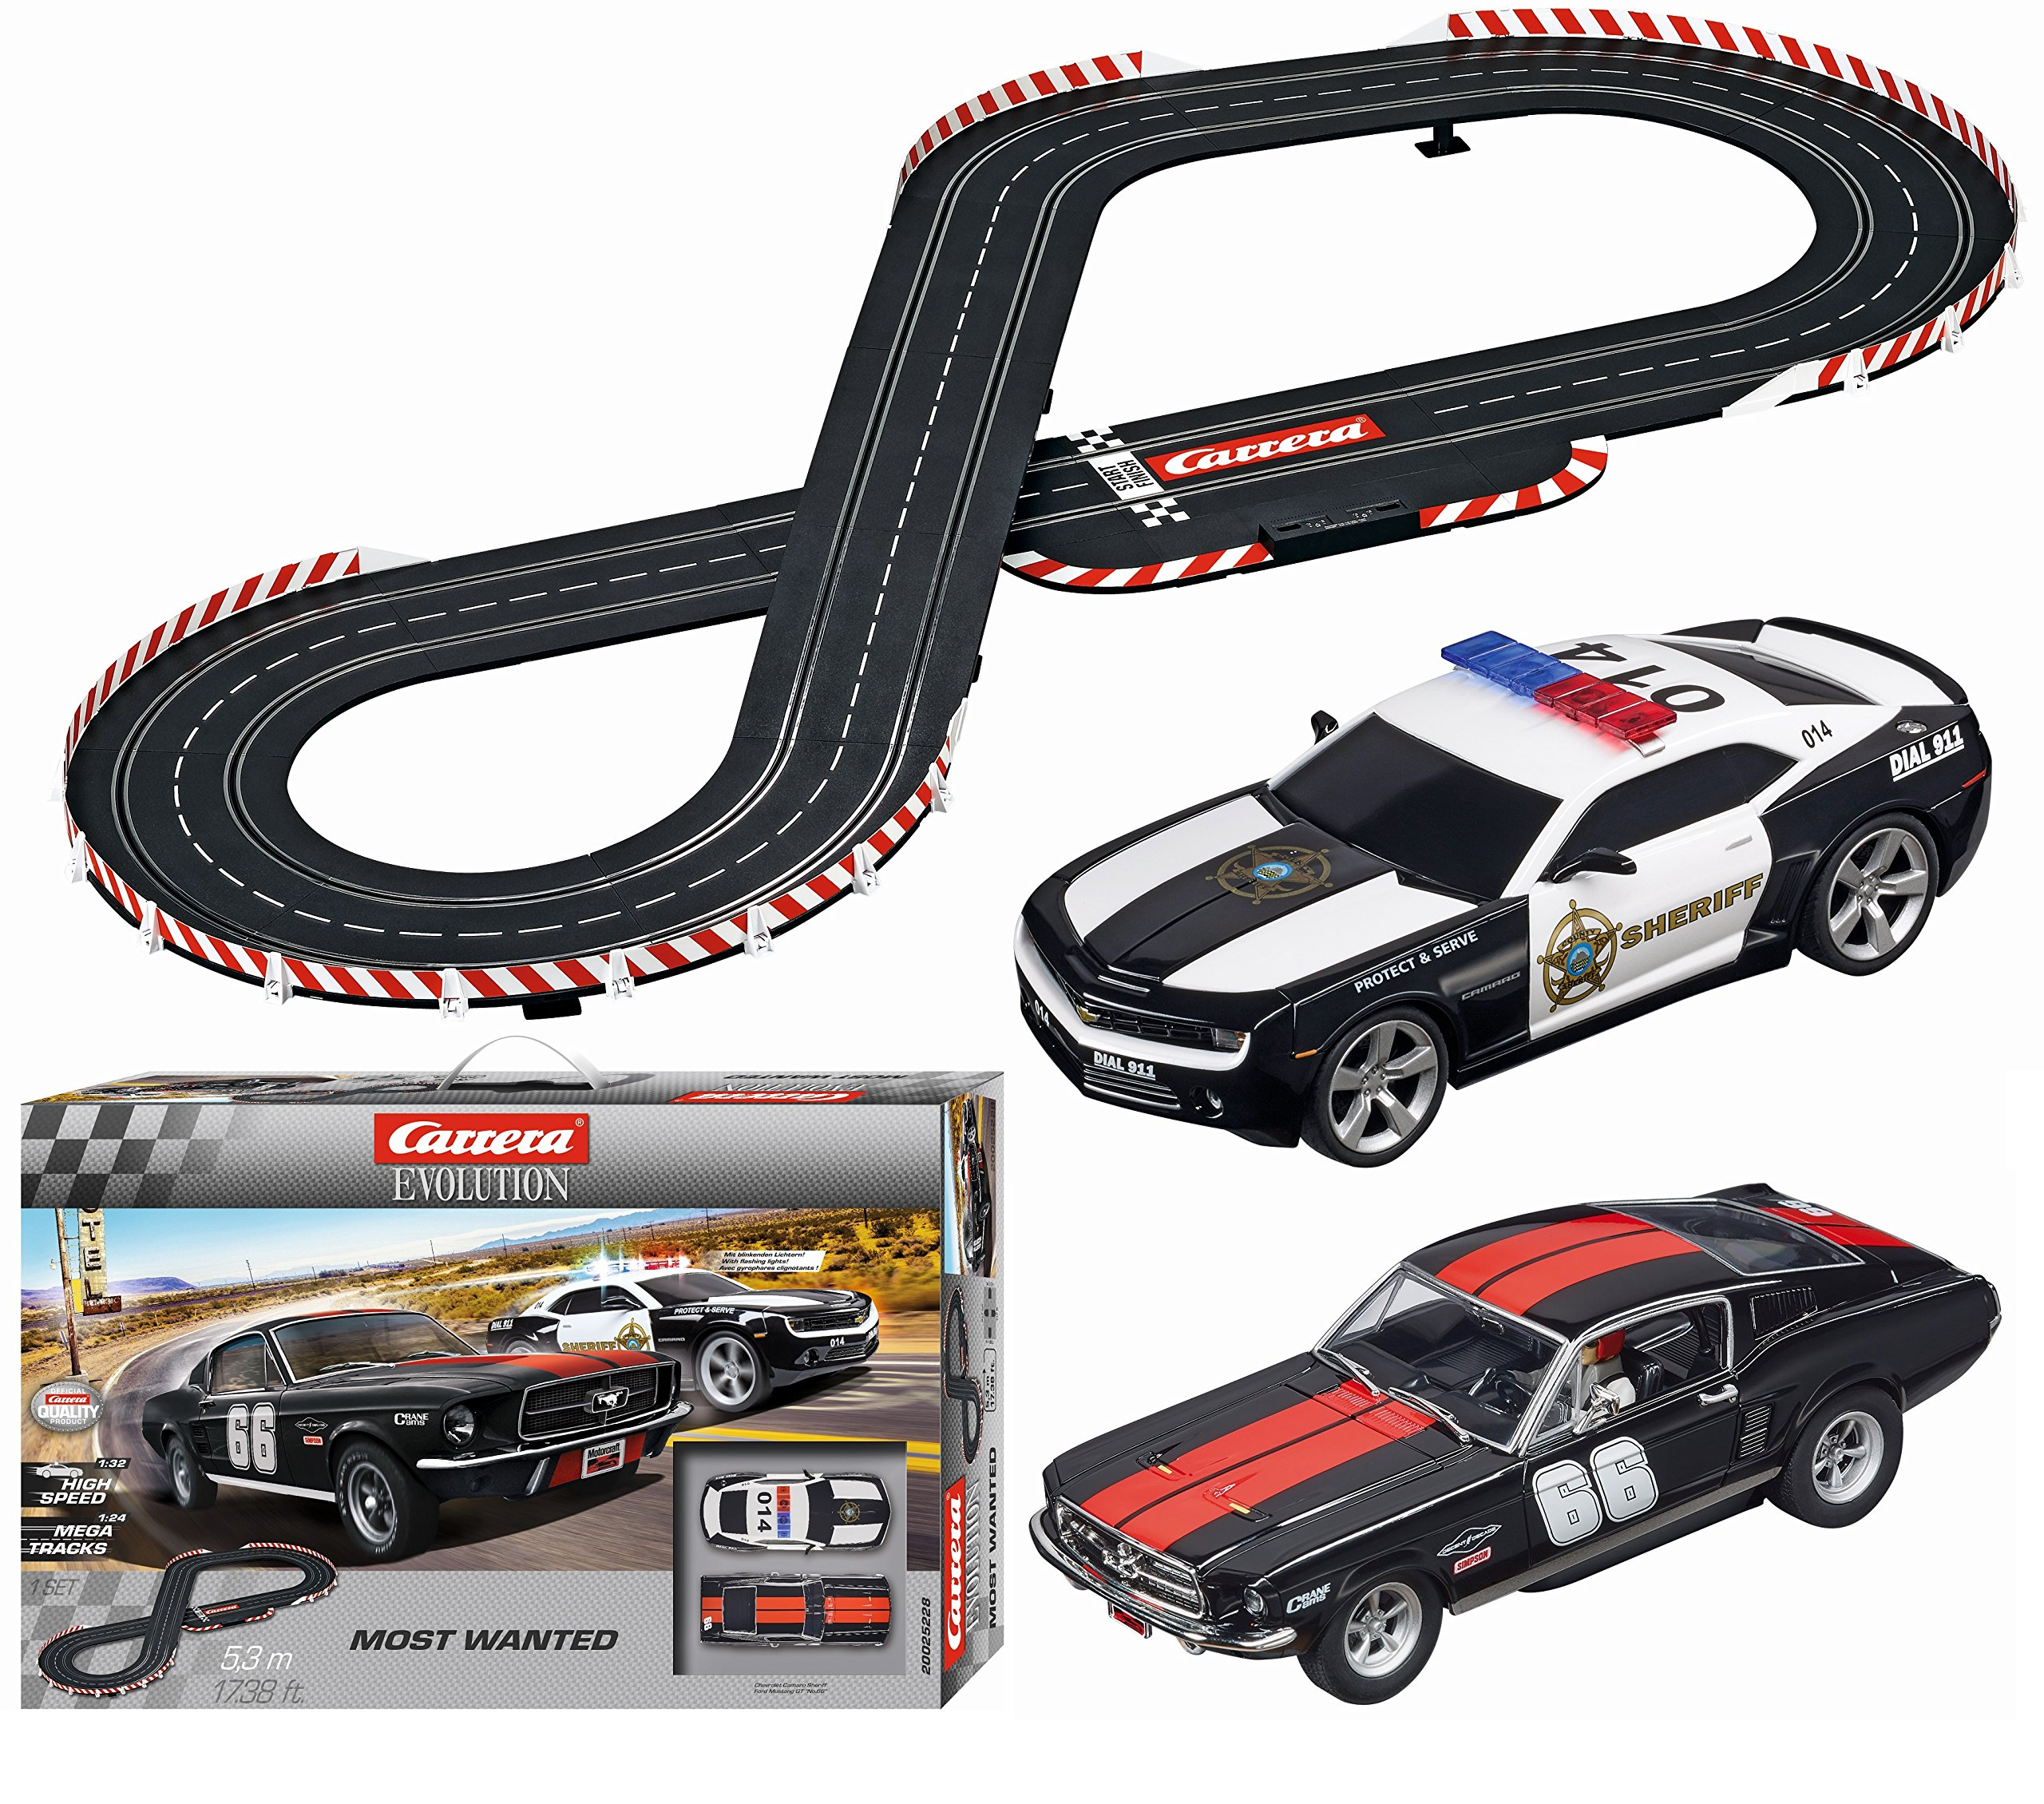 Carrera Evolution Most Wanted Slot Car Race Set 1:24 Scale Analog Track System - Includes Two 1:32 Scale Cars: Chevrolet Camaro Sheriff and Ford Mustang GT No. 66 - 2 Dual-Speed Controllers Ages 8+ by Carrera